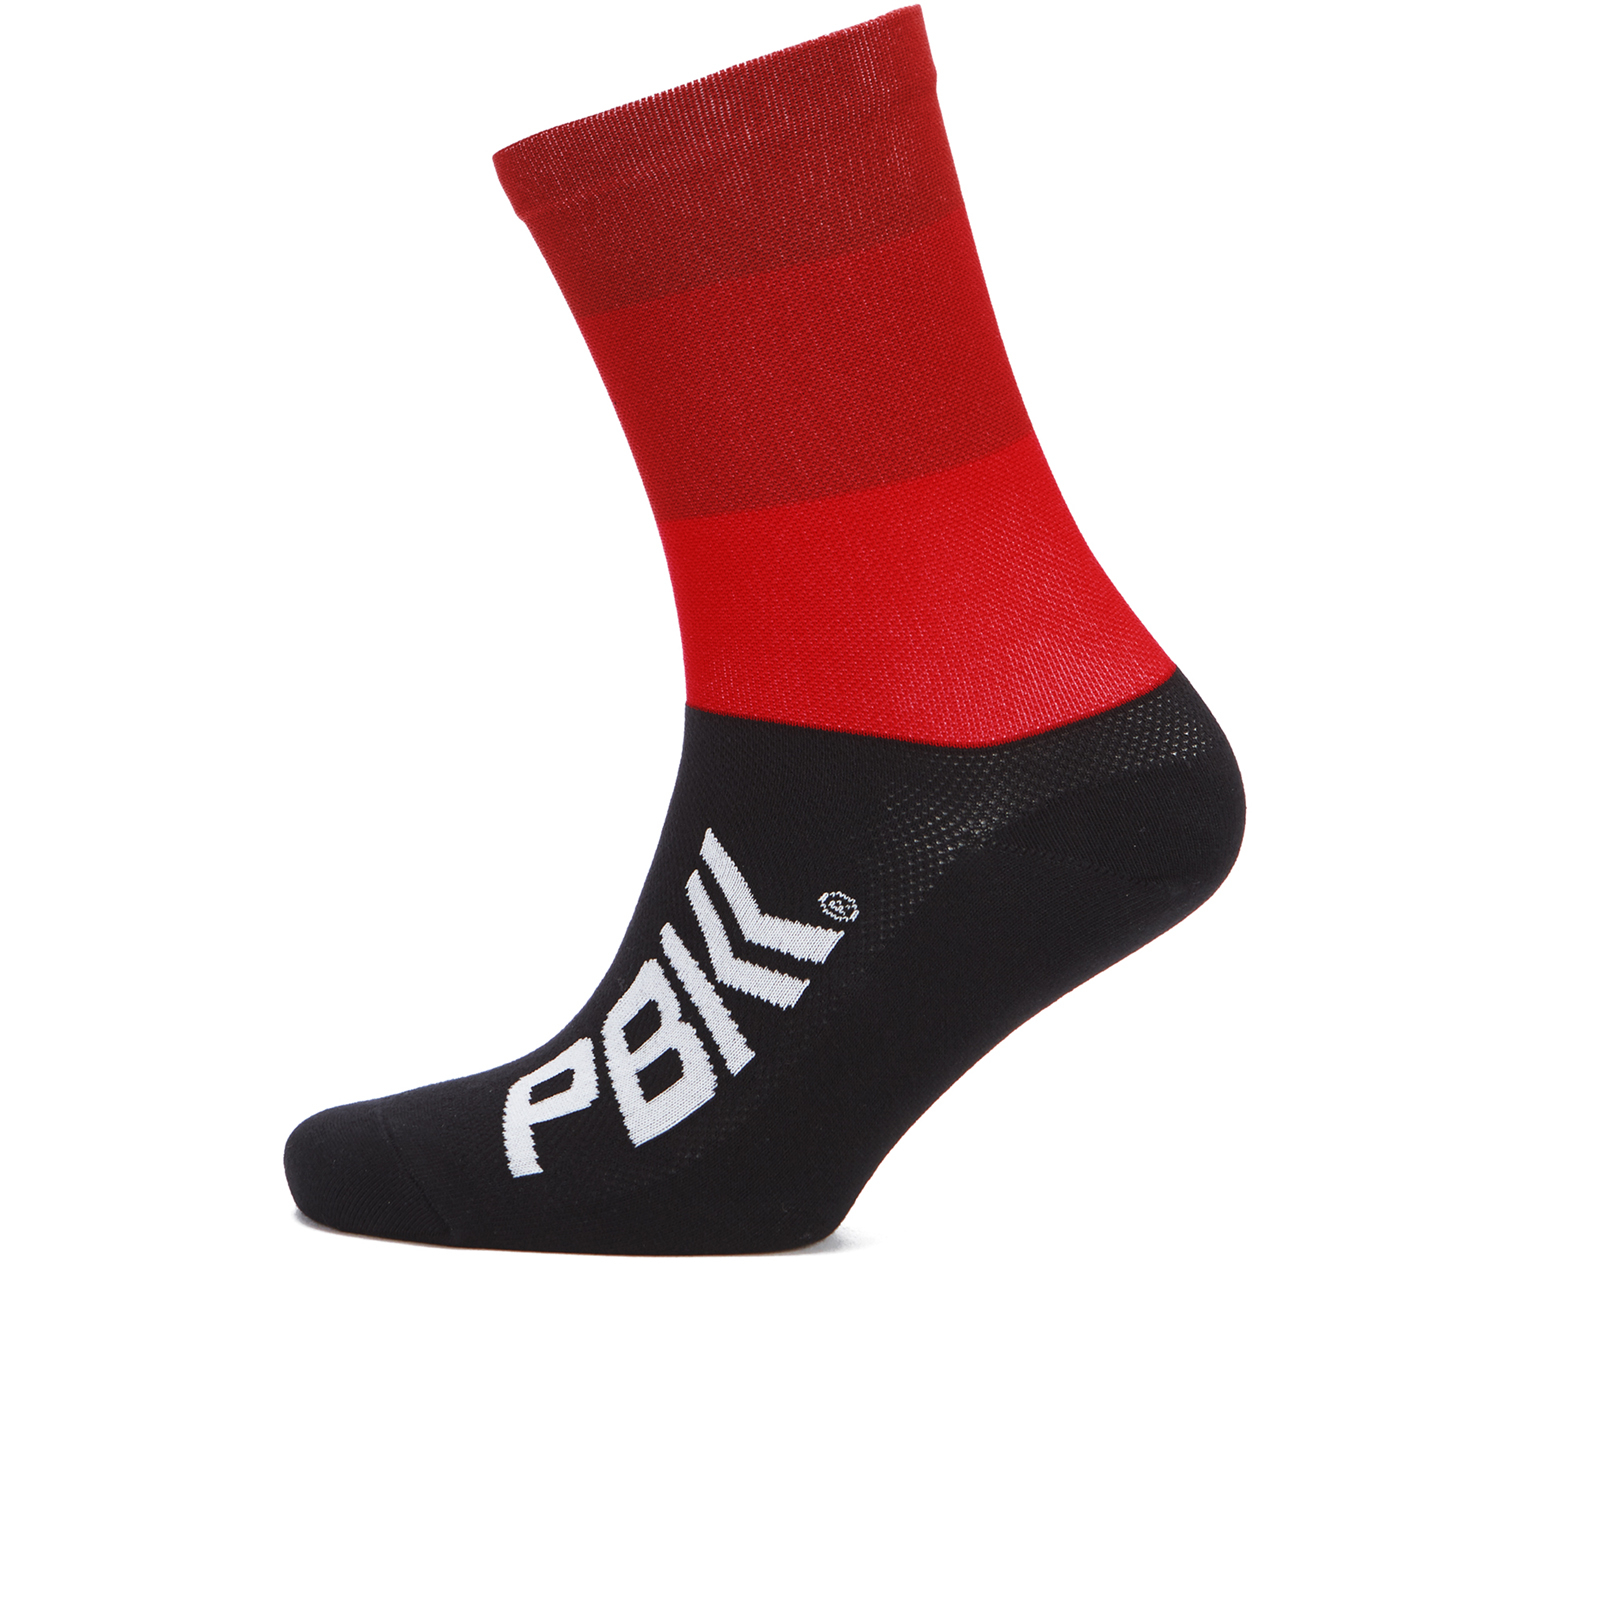 PBK Race High Cuff Socks - Red